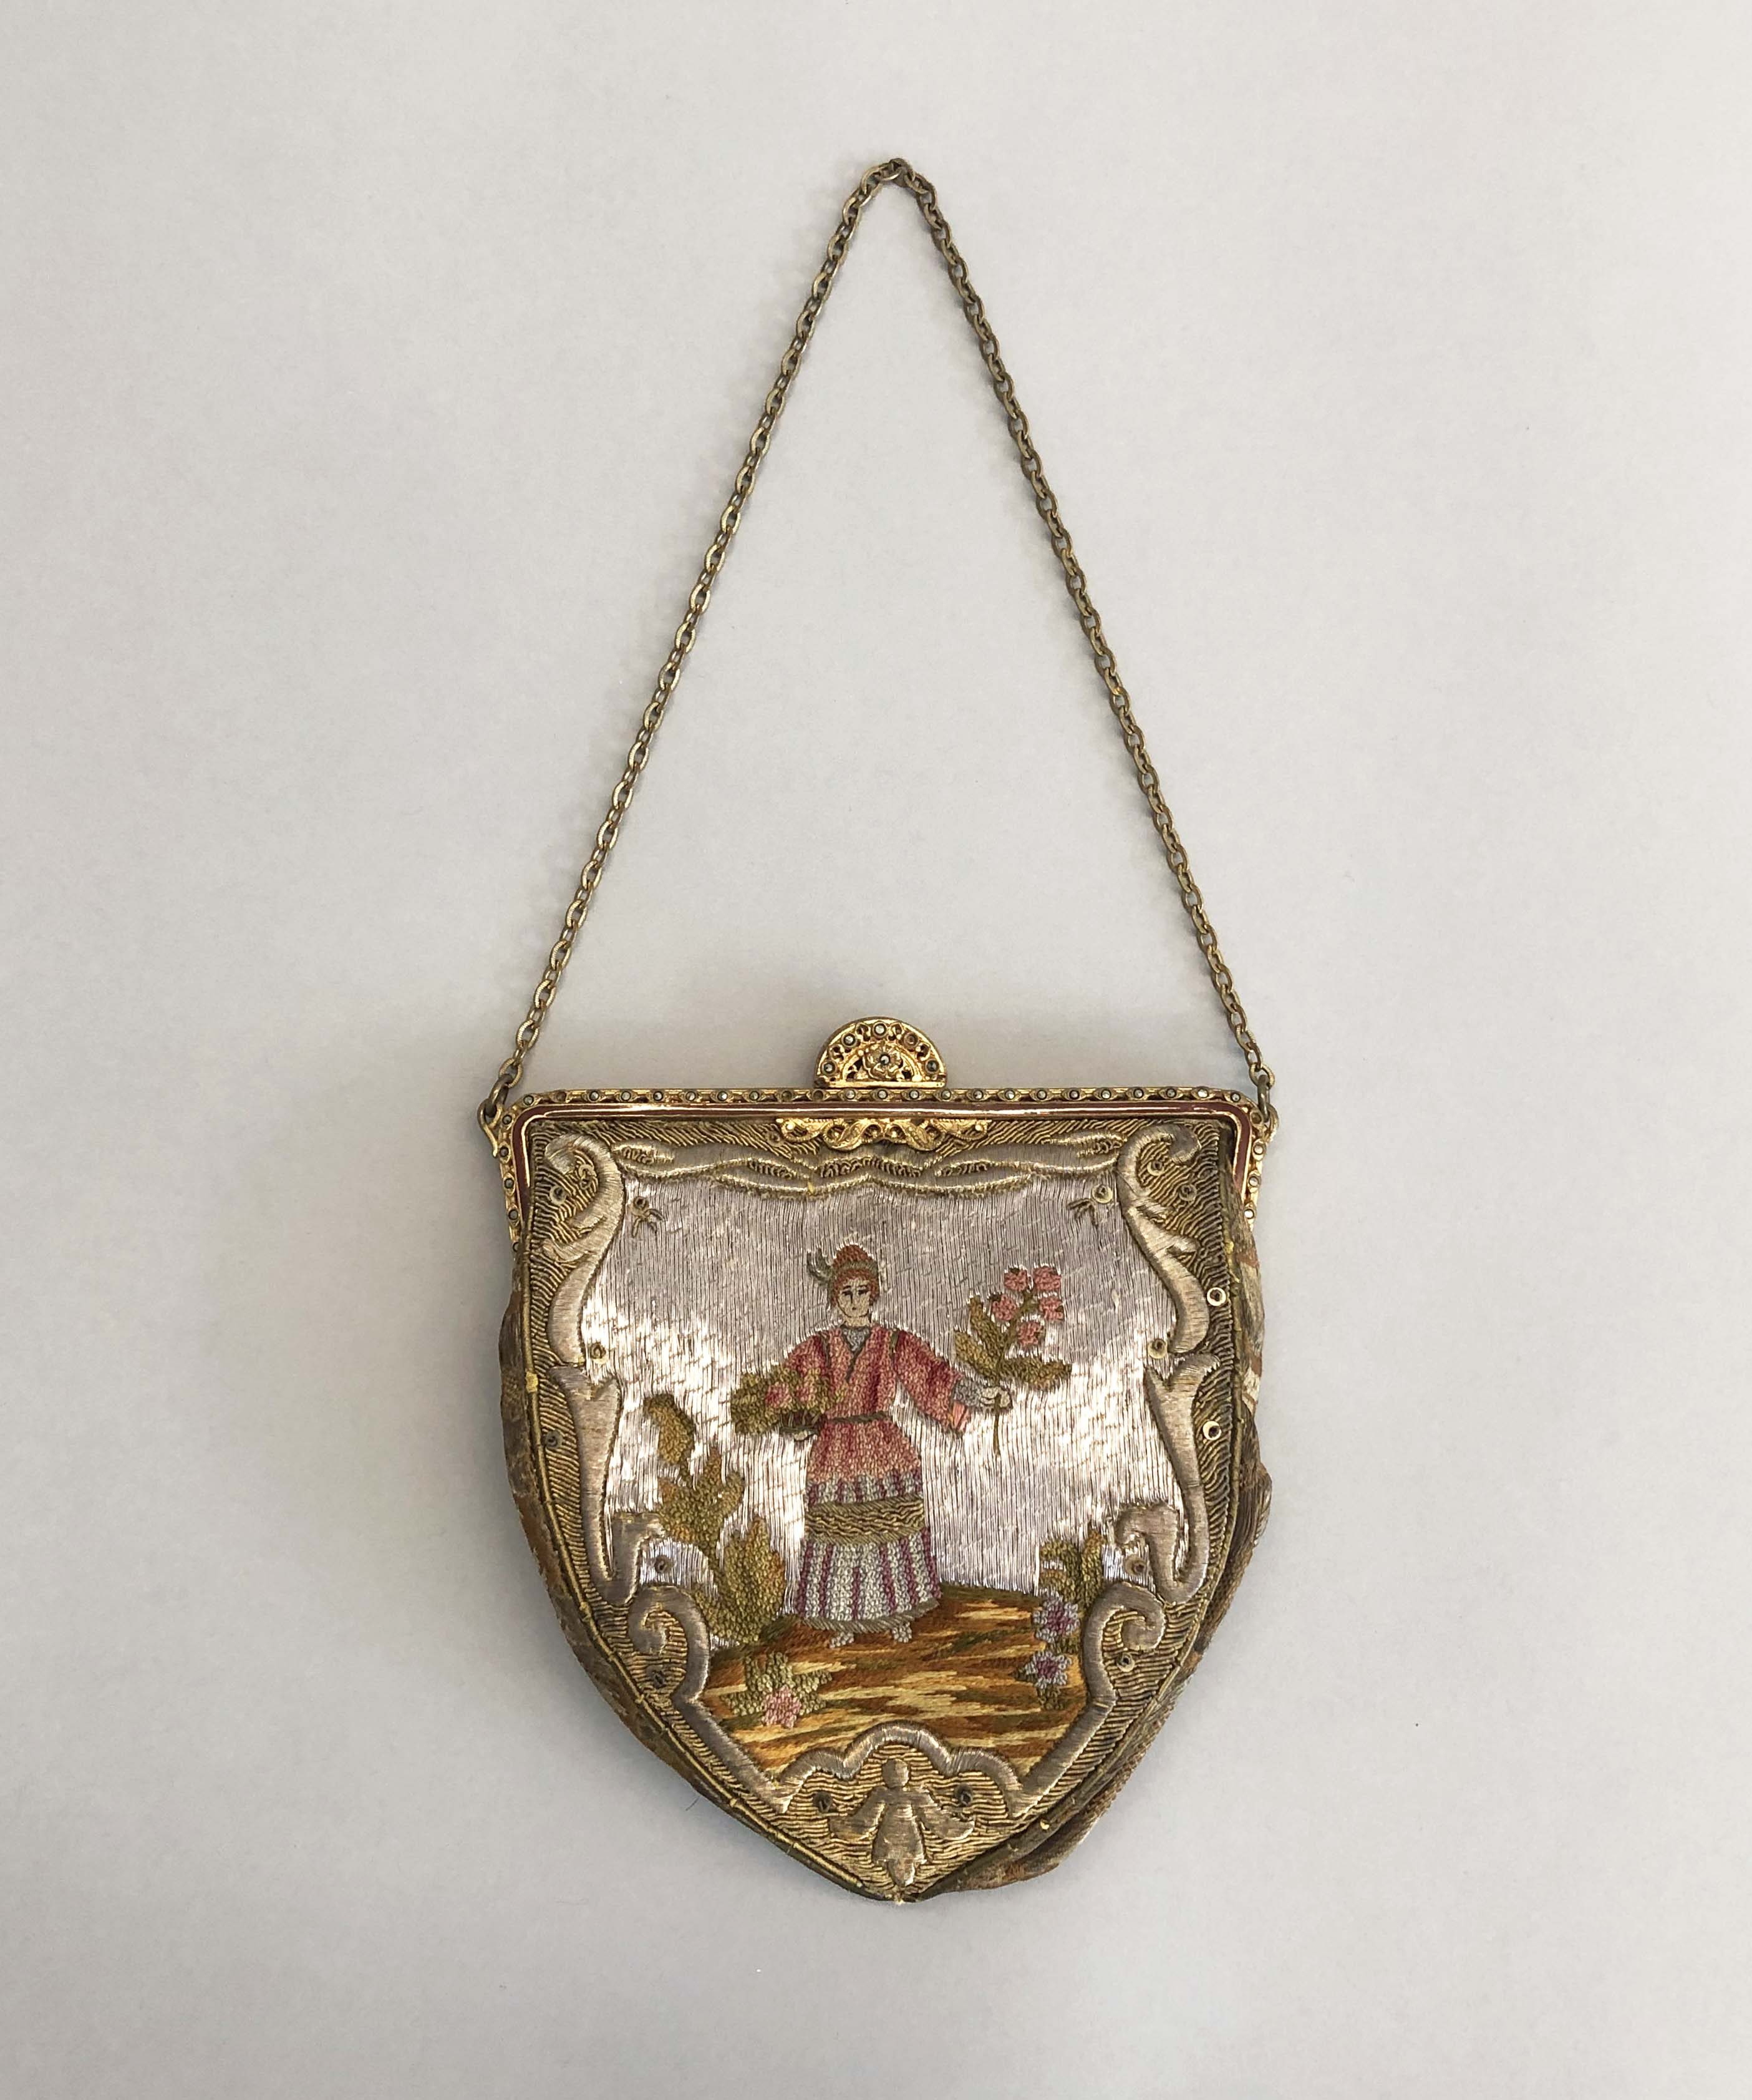 Embroidered Frame Bag with Chain-1.jpg